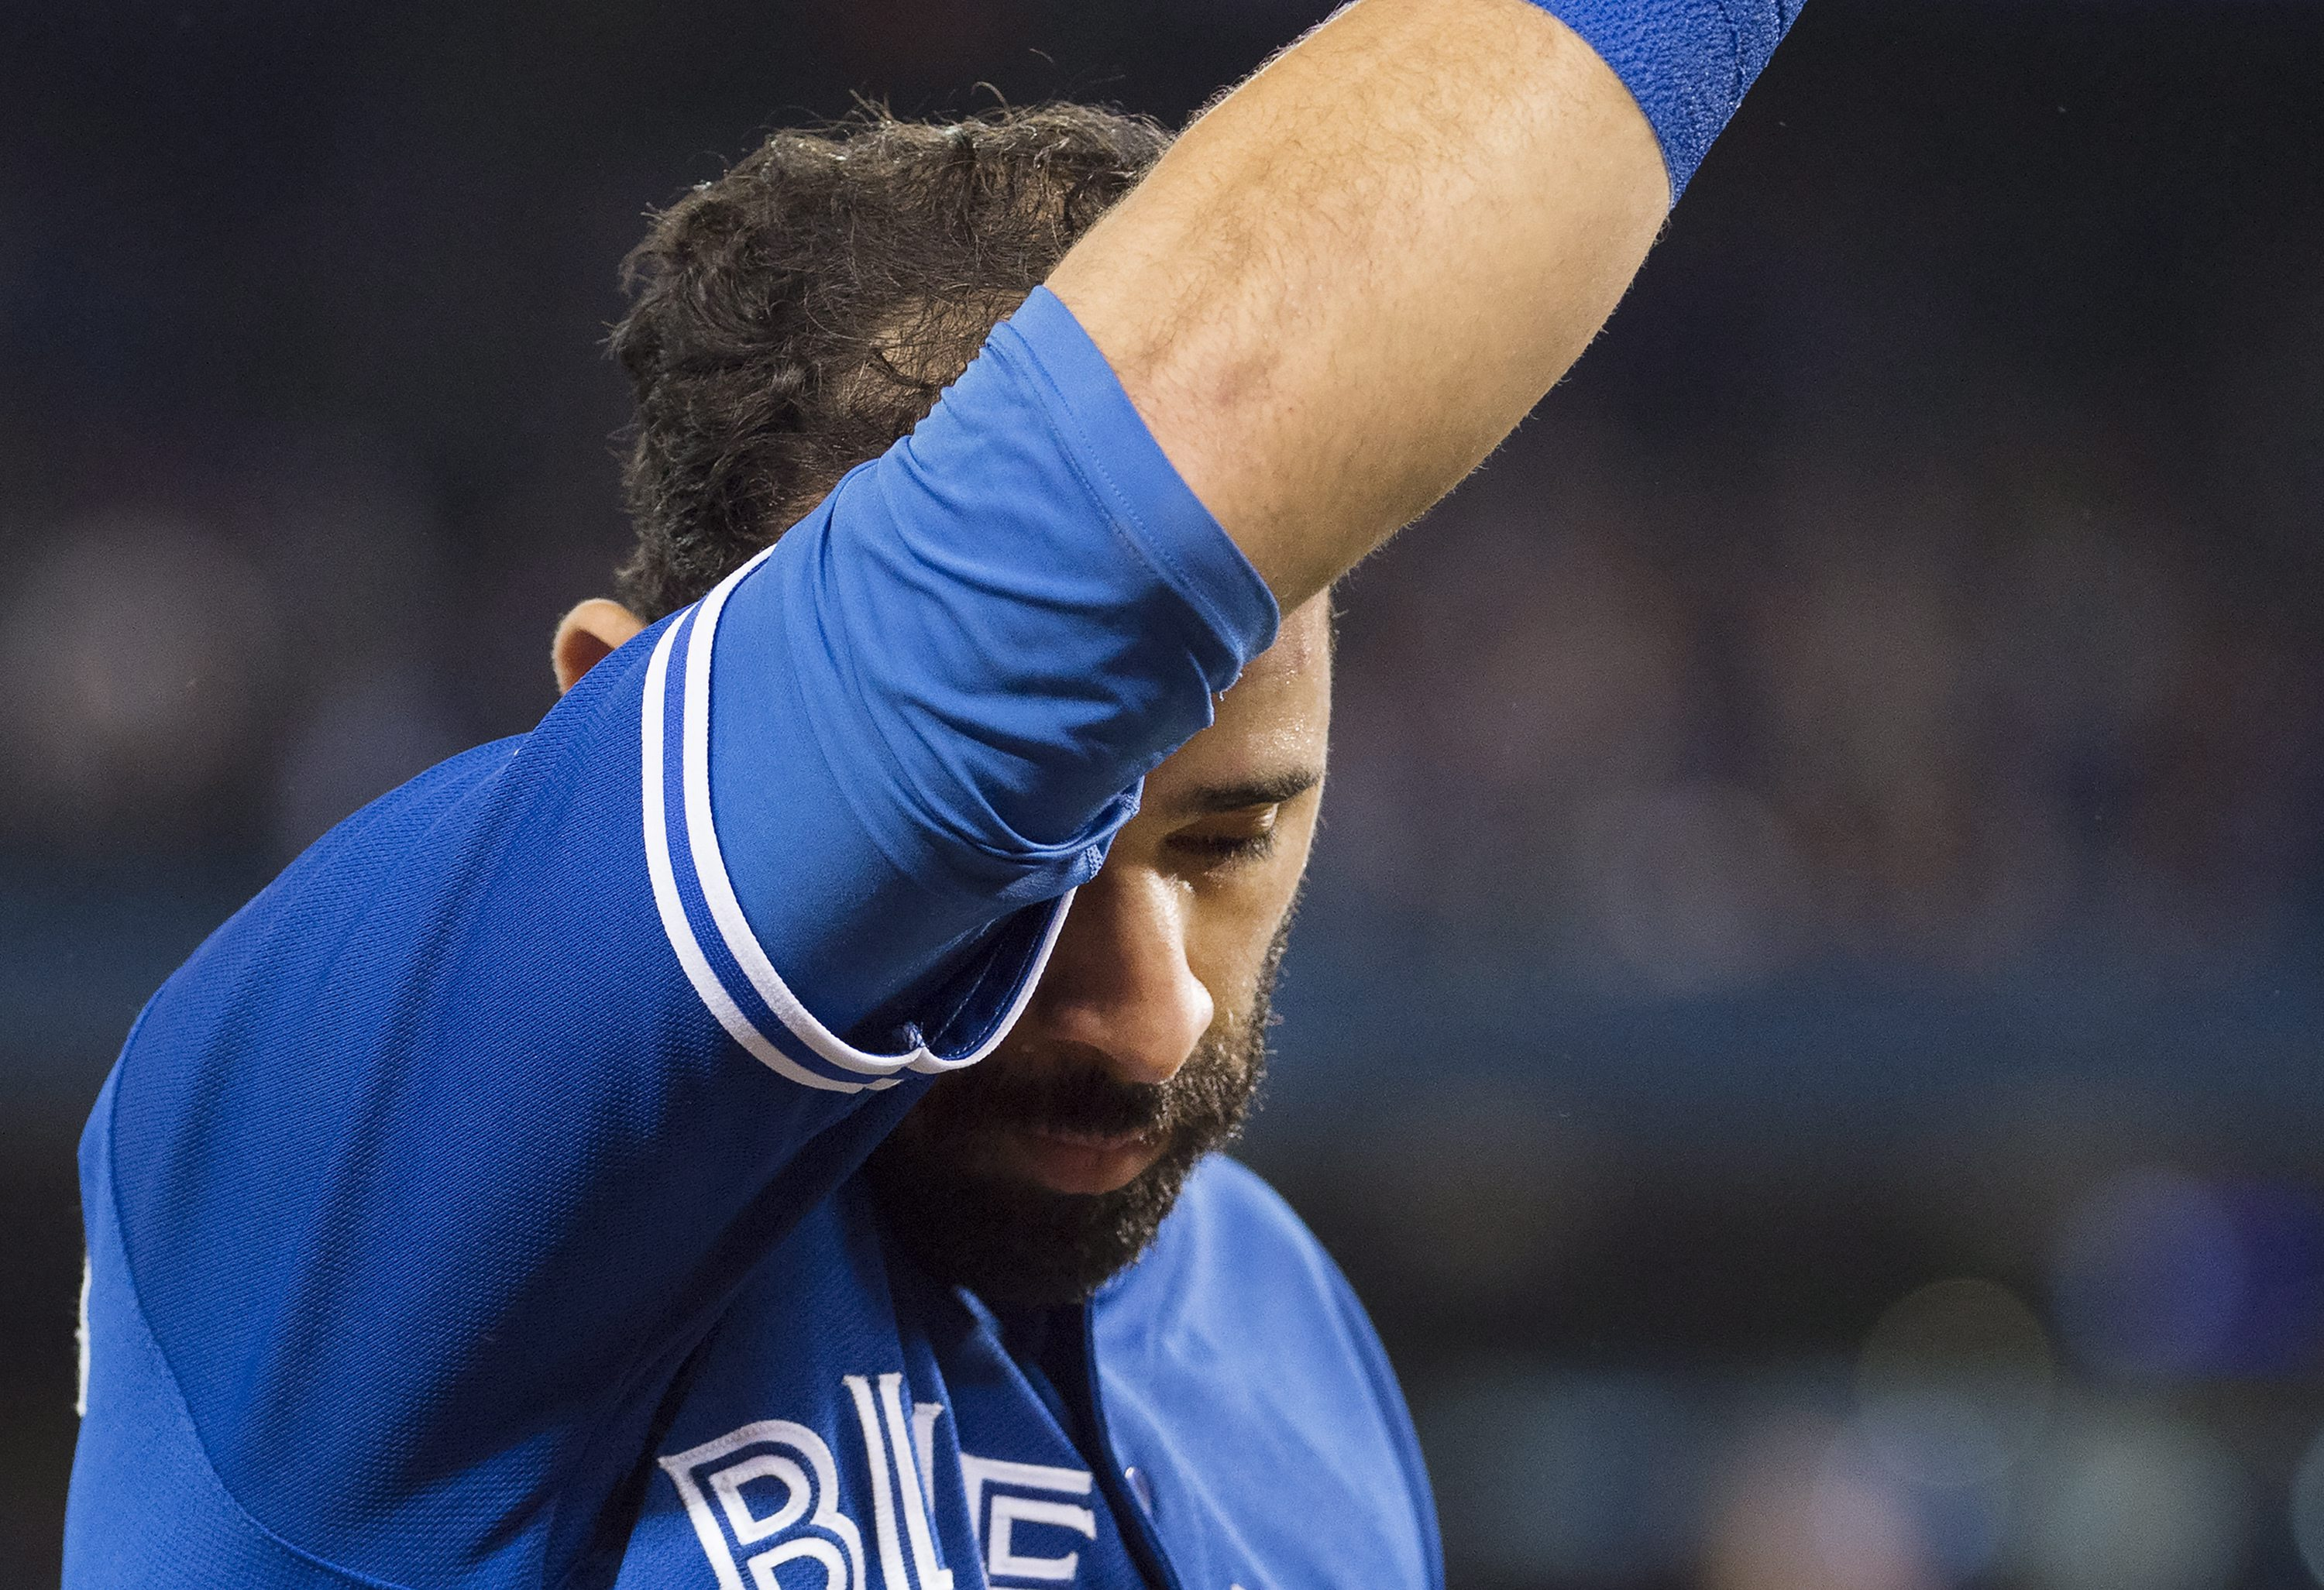 Toronto Blue Jays right fielder Jose Bautista reacts after the Cleveland Indians defeated the Blue Jays 3-0 in Game 5 of the baseball American League Championship Series in Toronto on Wednesday, Oct. 19, 2016. (Nathan Denette/The Canadian Press via AP)